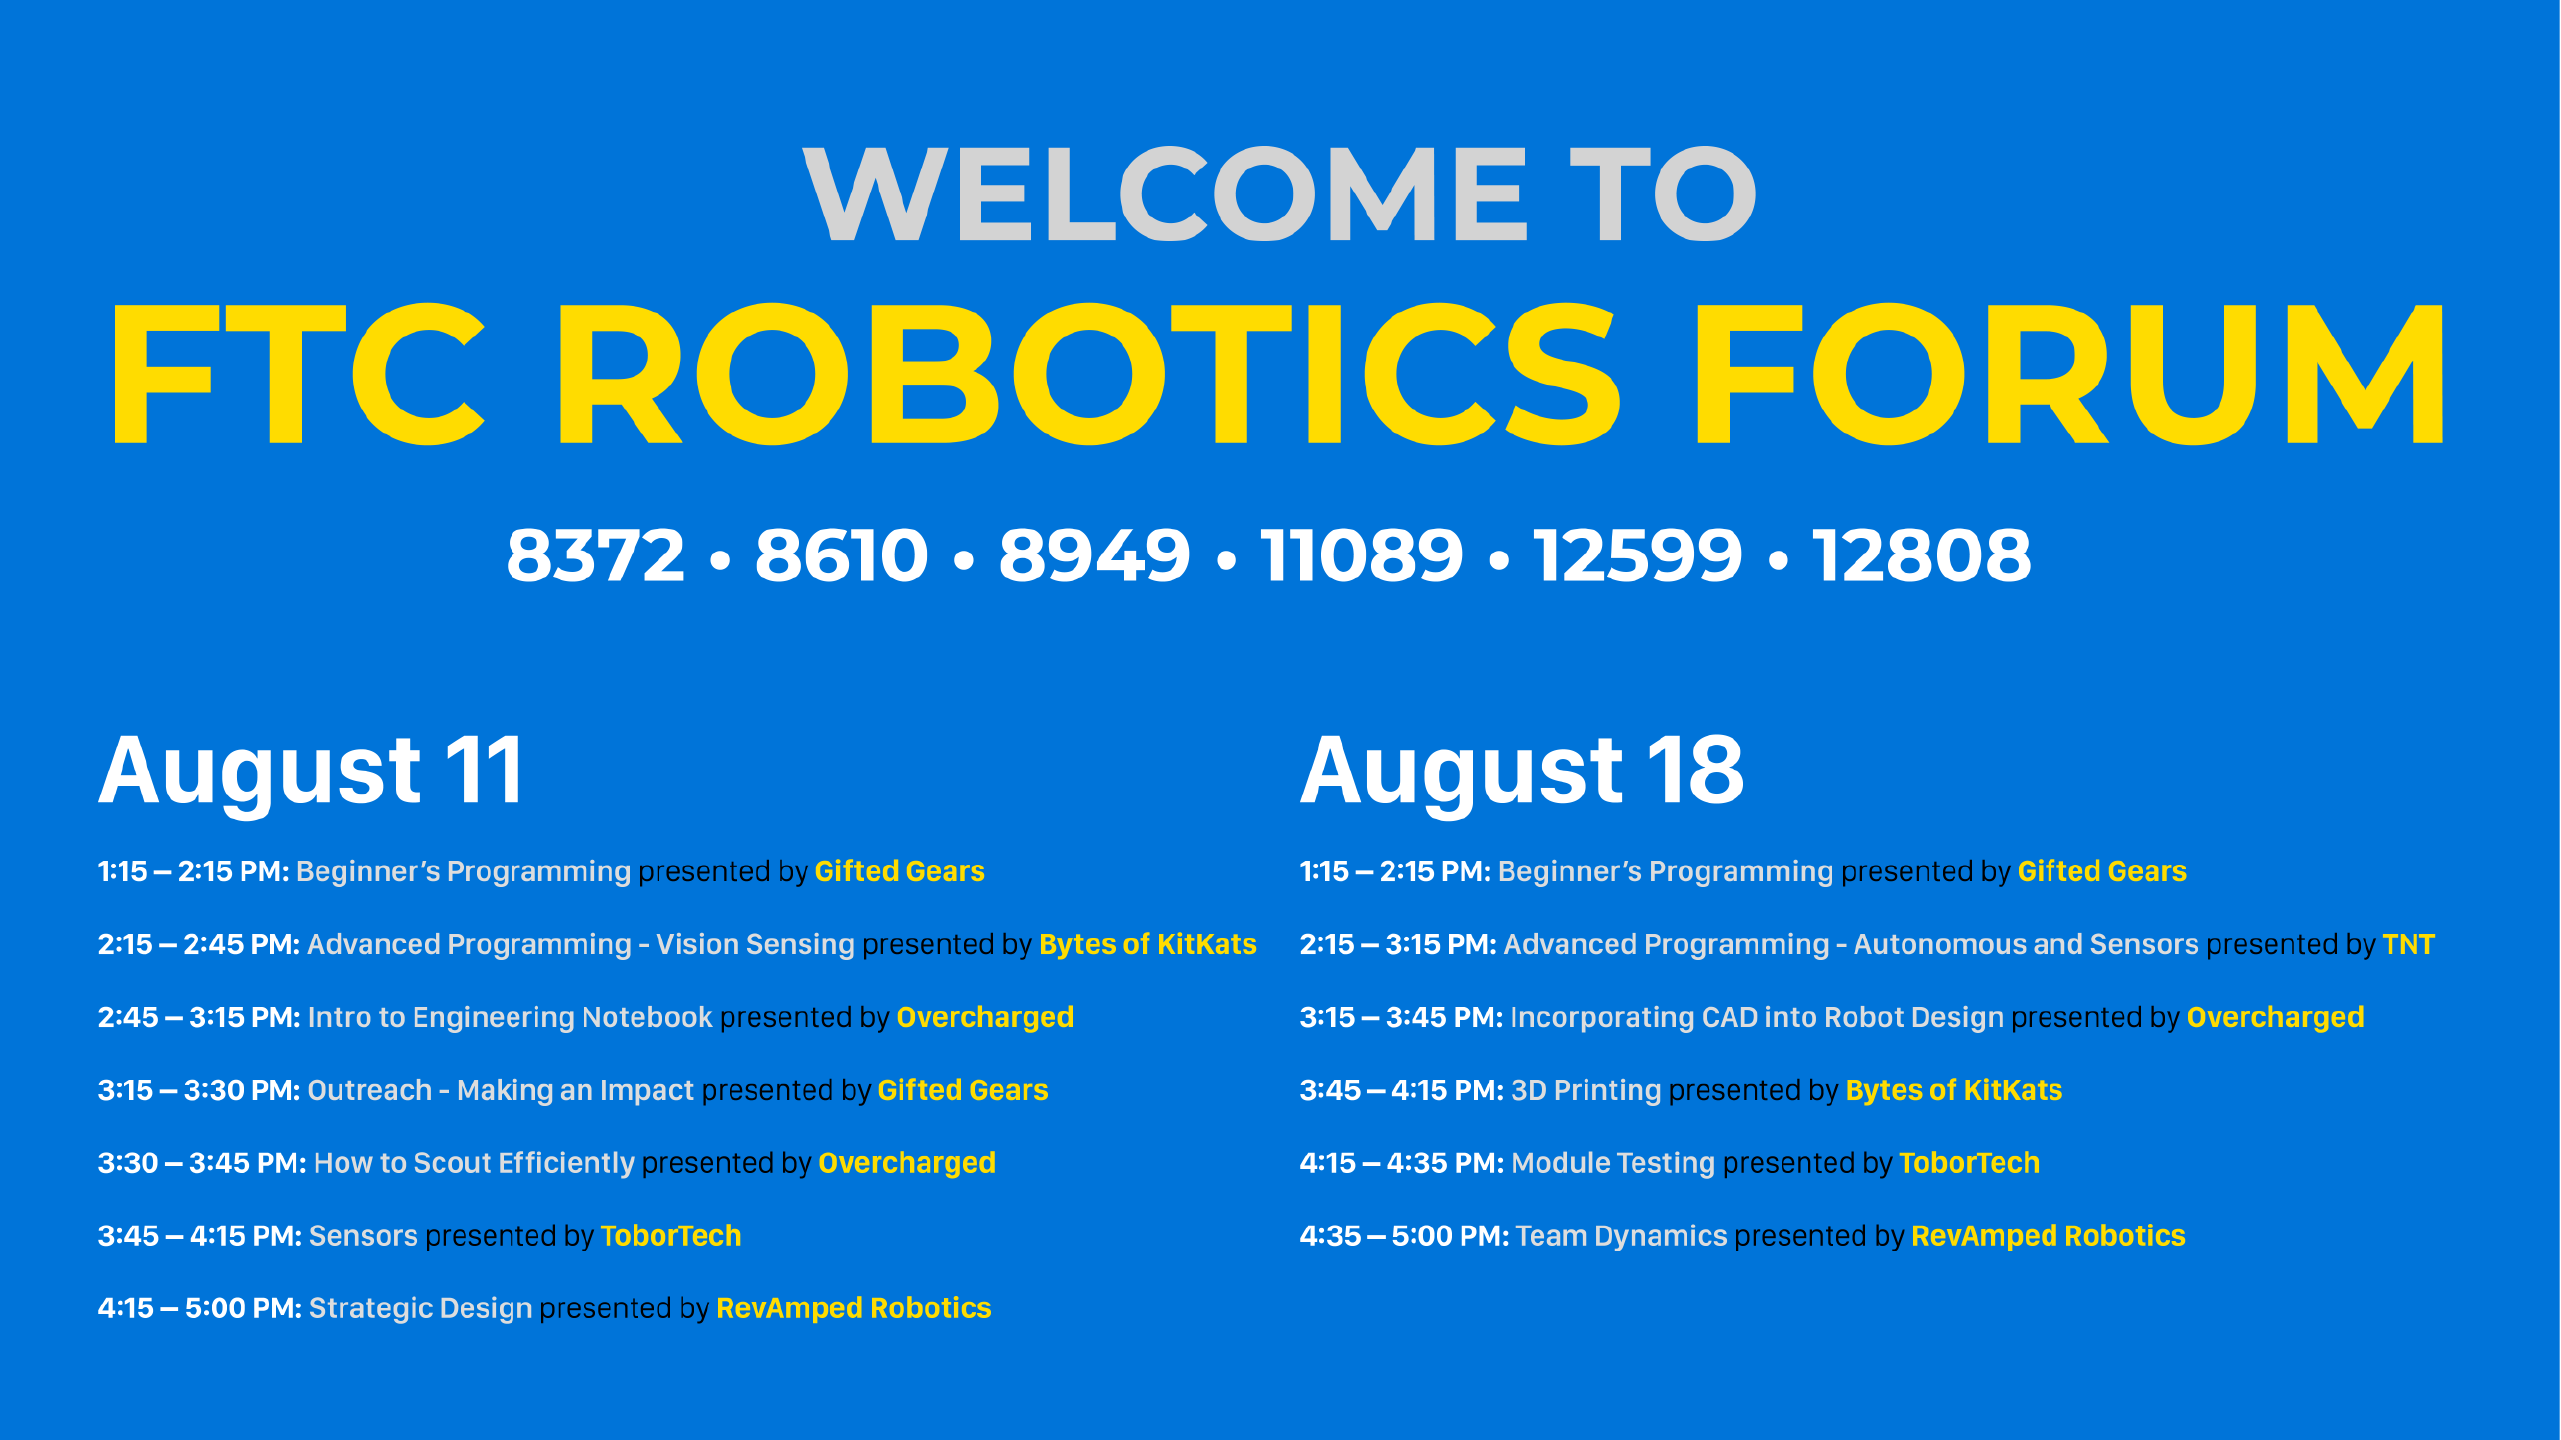 FTC Robotics Forum